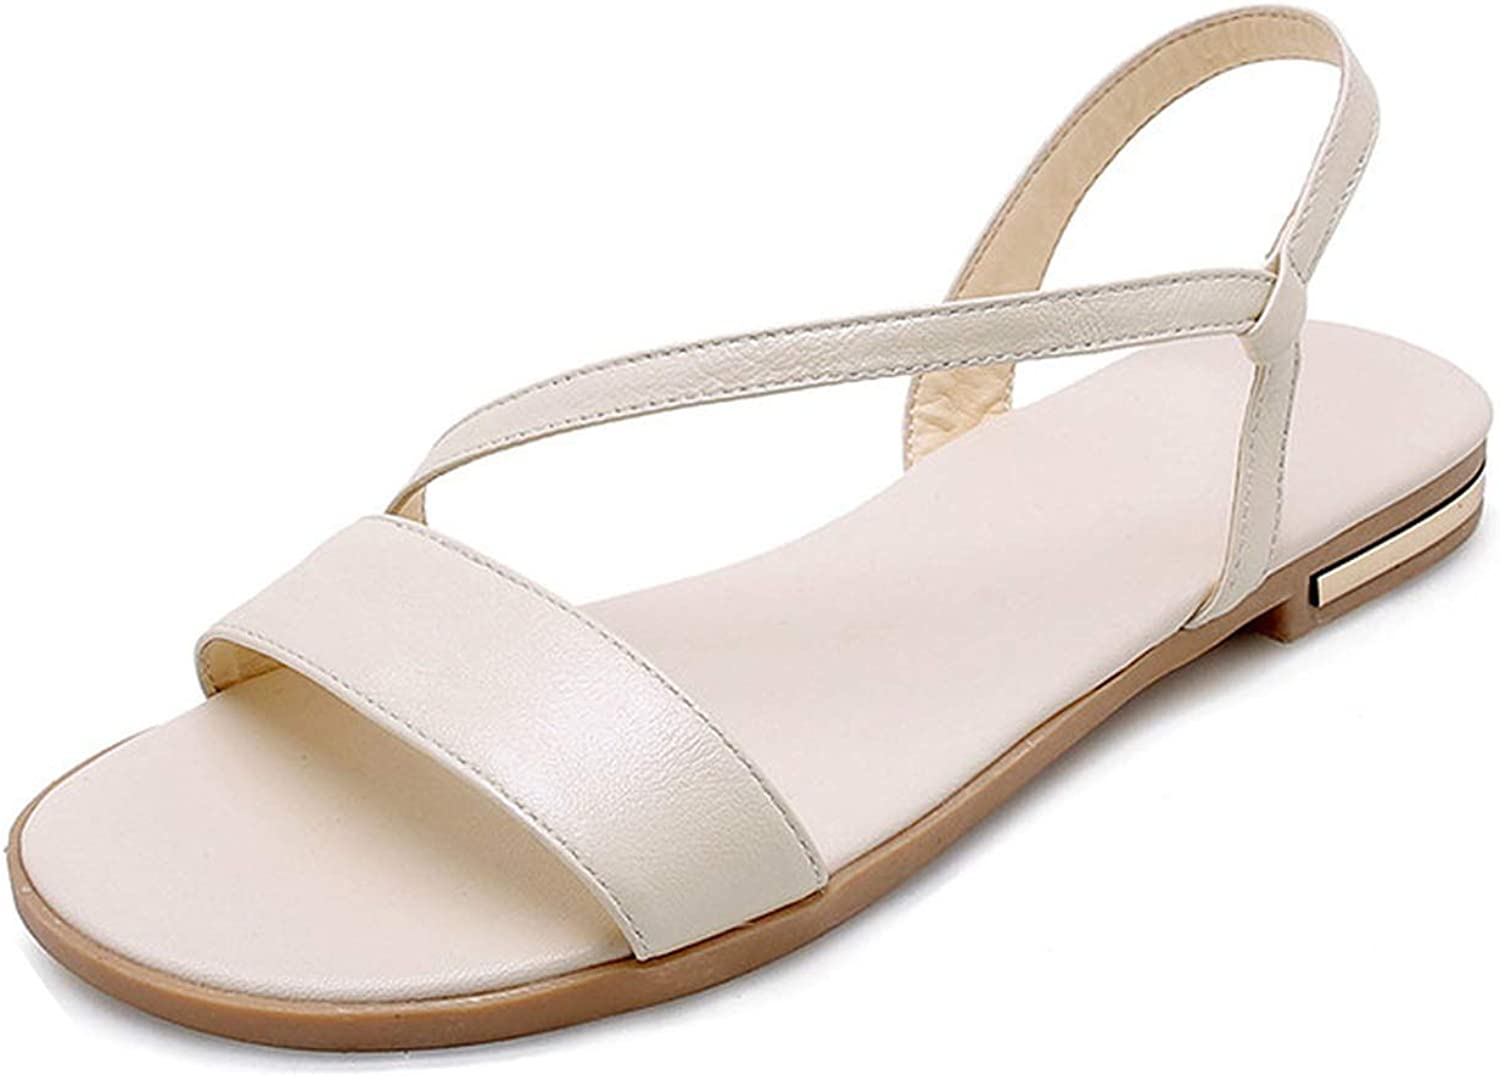 Women Sandals Slip on Summer shoes Woman Flat Beach shoes Female